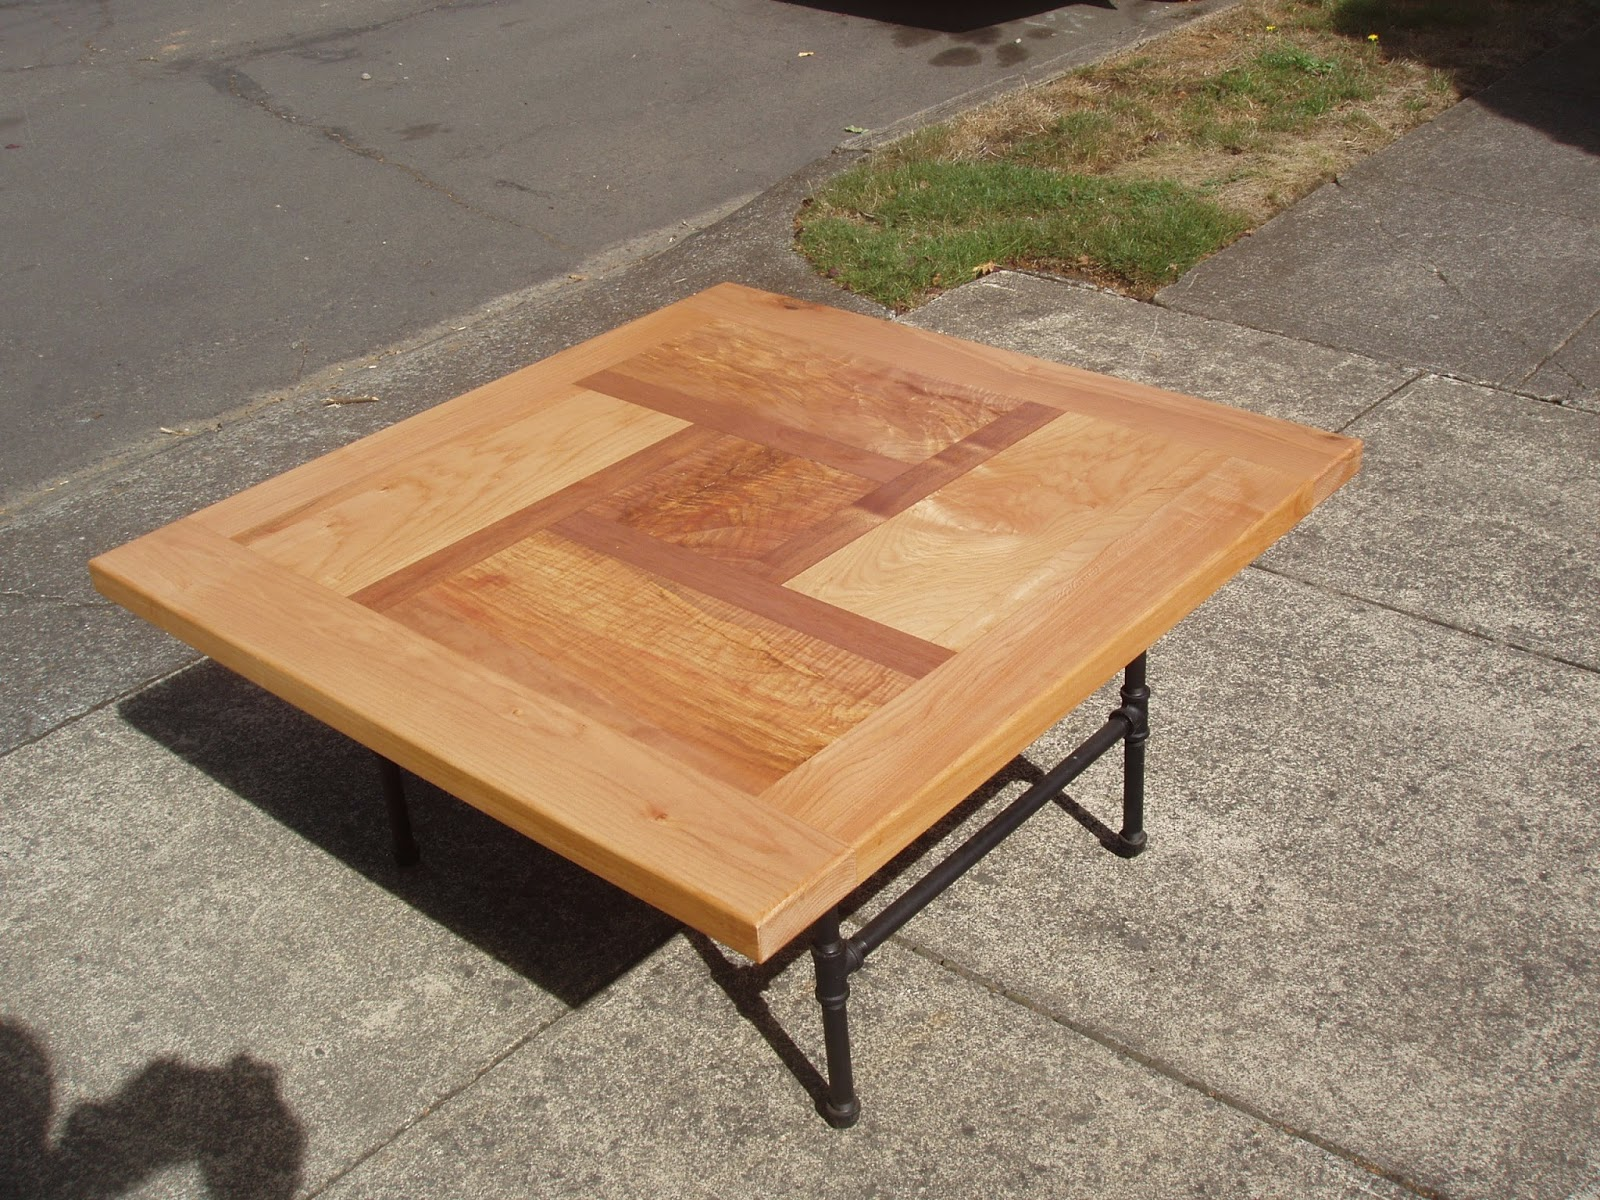 Pnw Pinwheel Design Coffee Table In Maple And Osage